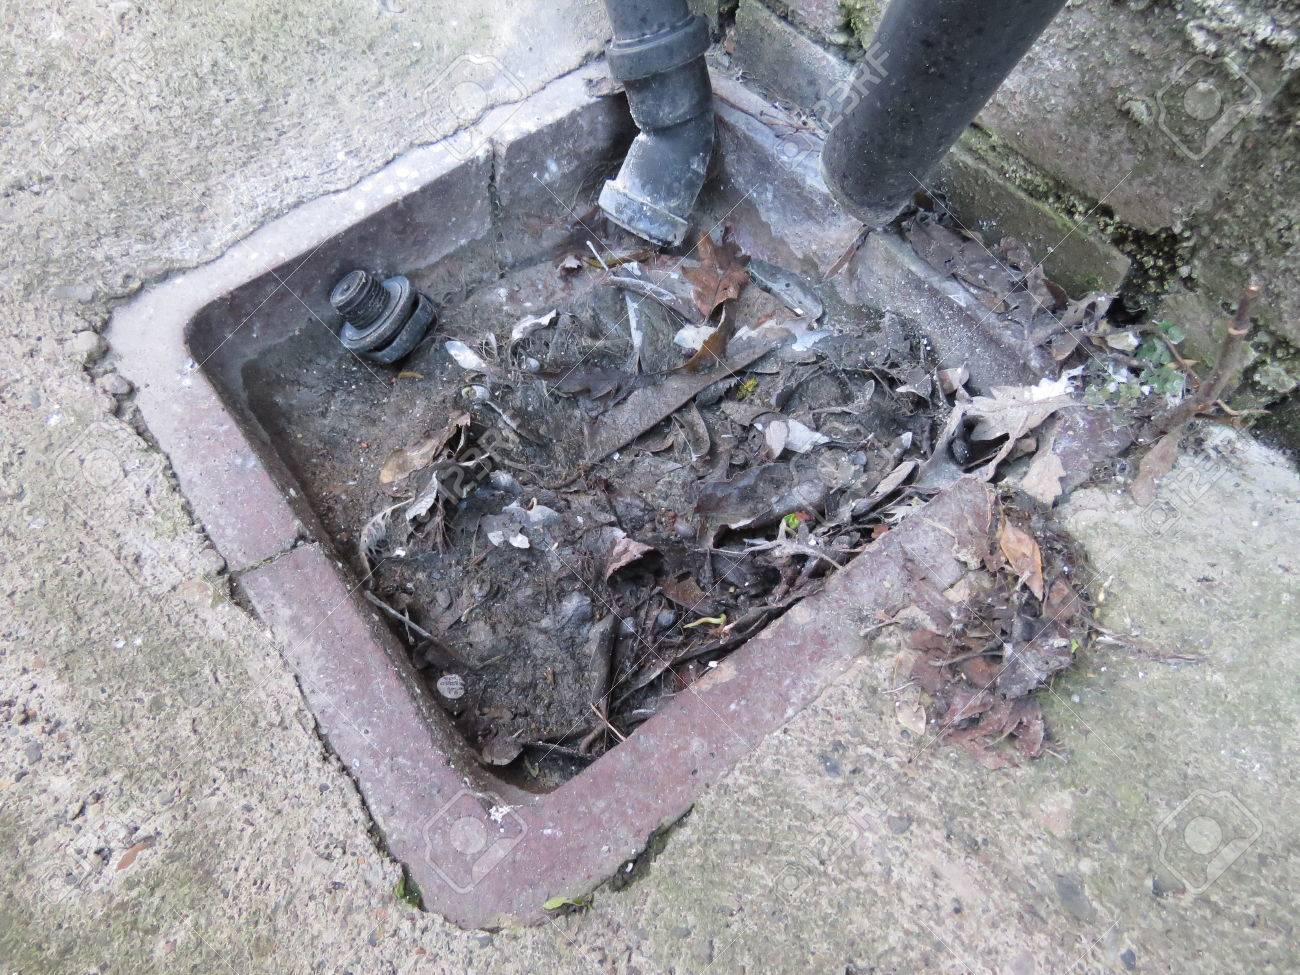 Outside drain, blocked by leaves and rubbish Standard-Bild - 55004889